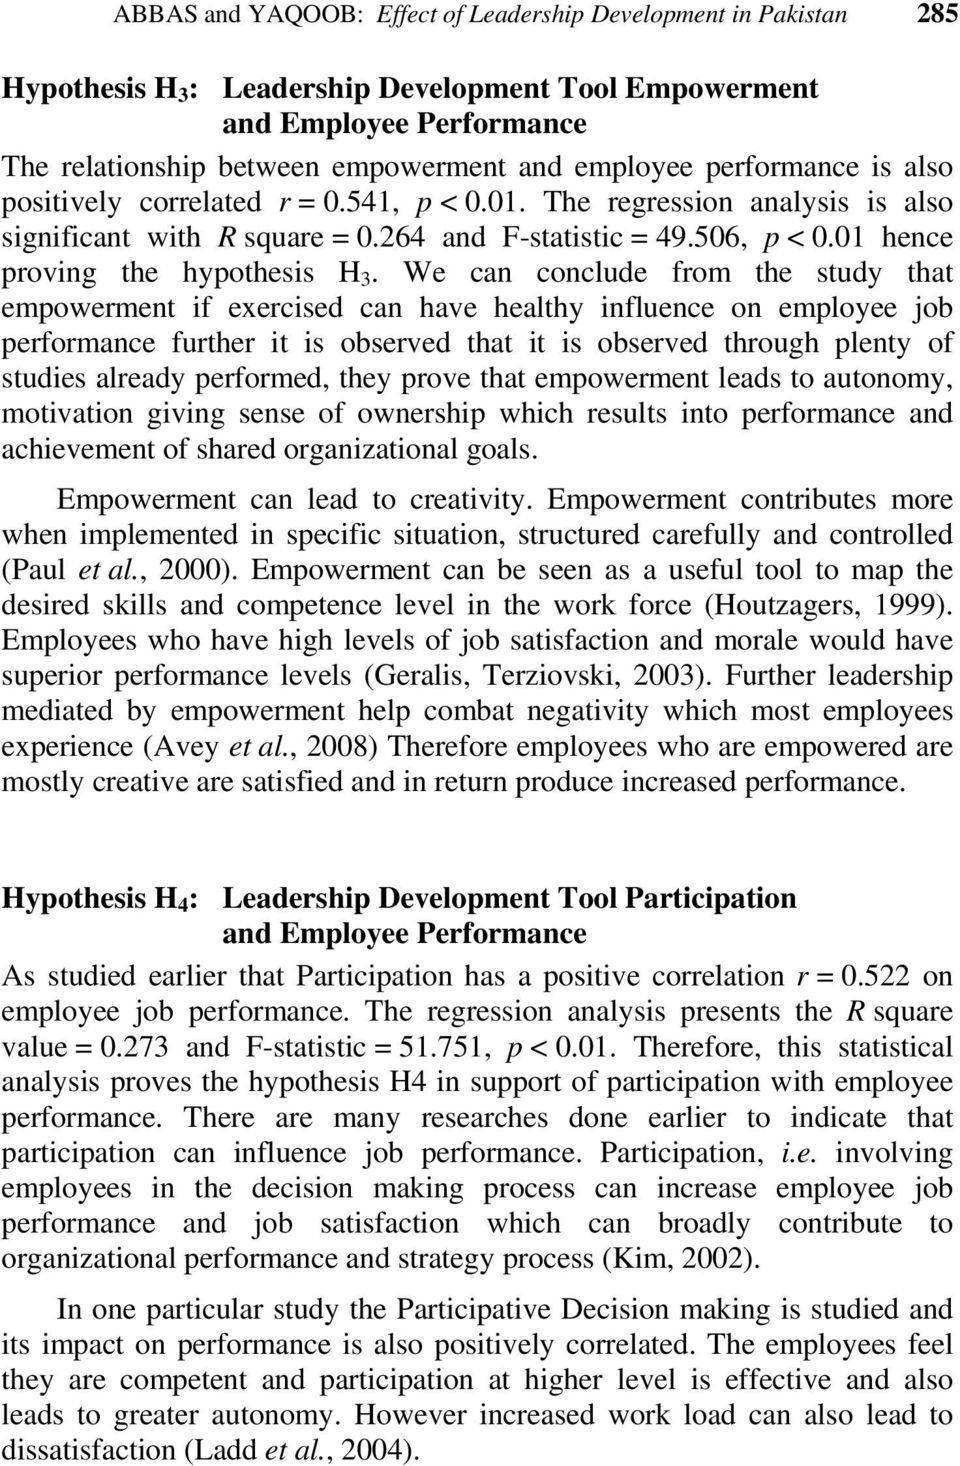 We can conclude from the study that empowerment if exercised can have healthy influence on employee job performance further it is observed that it is observed through plenty of studies already